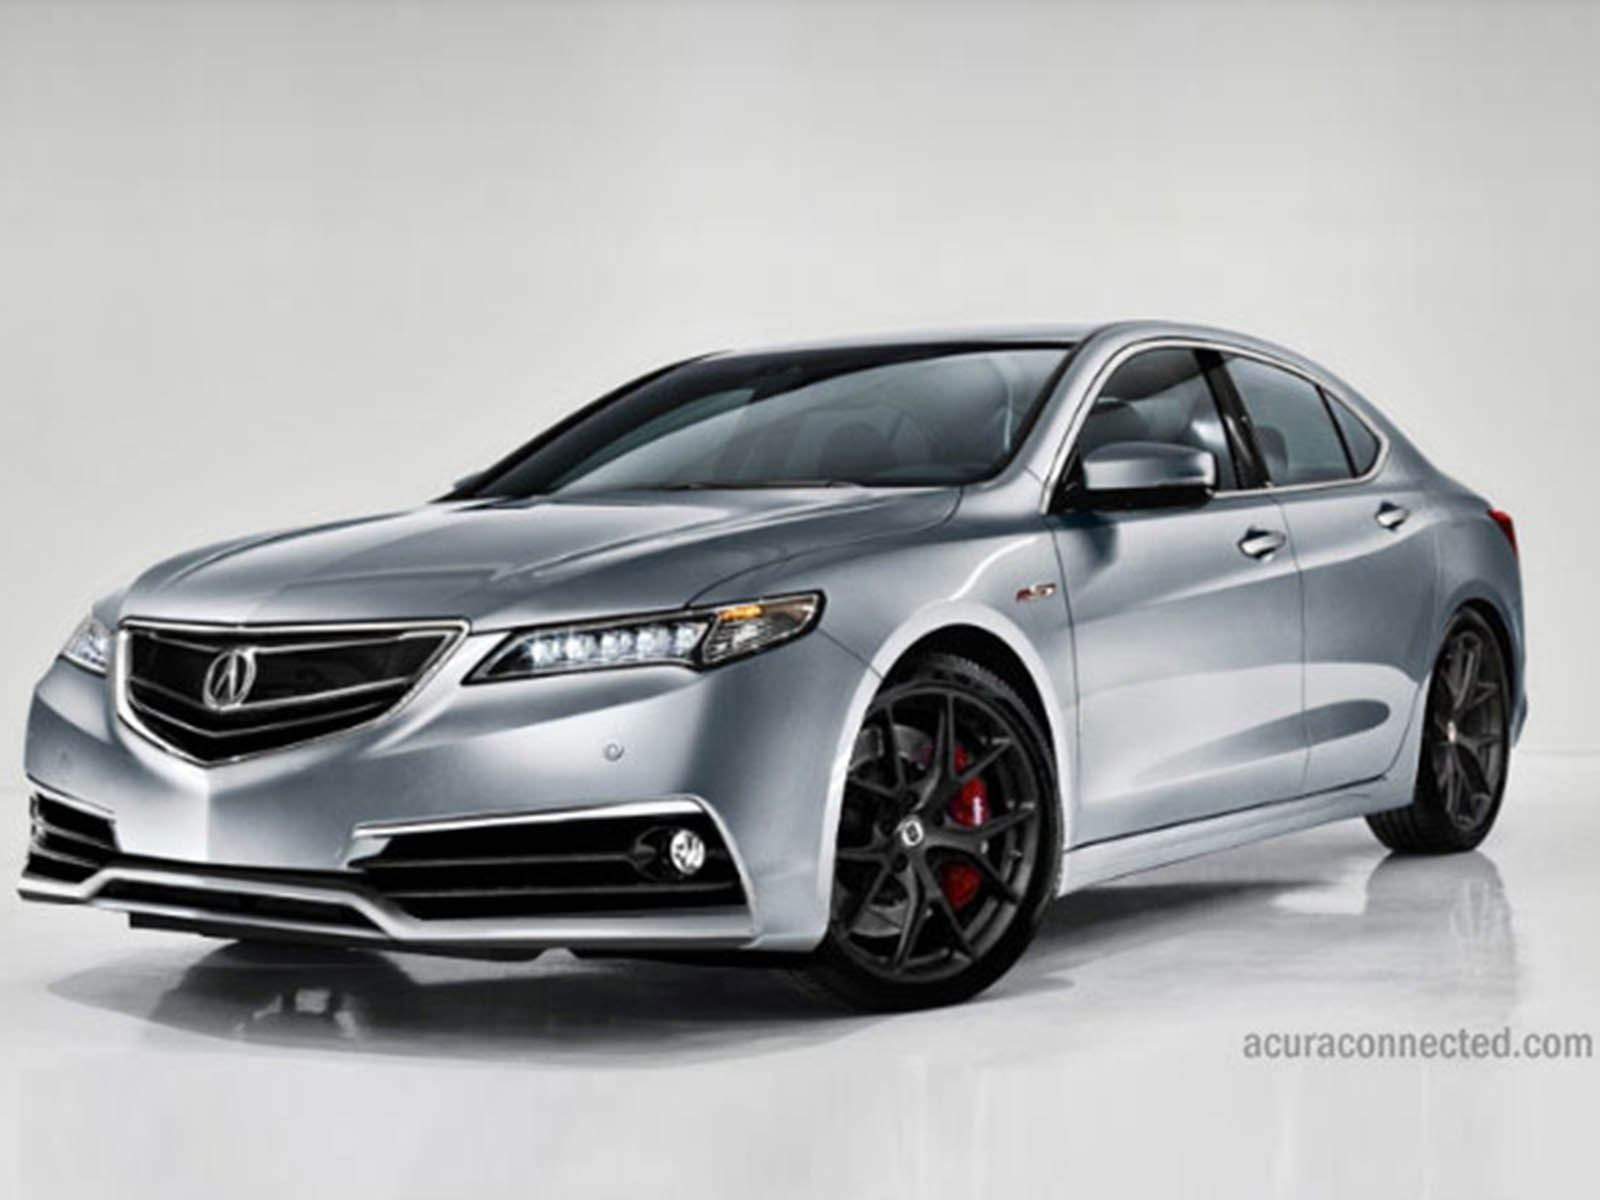 Expert Review Of The 2020 Acura Tl Type S Provides The Latest Look At Trim Level Features And Specs Performance Safety And Comf Acura Tlx Acura Ilx Acura Tl